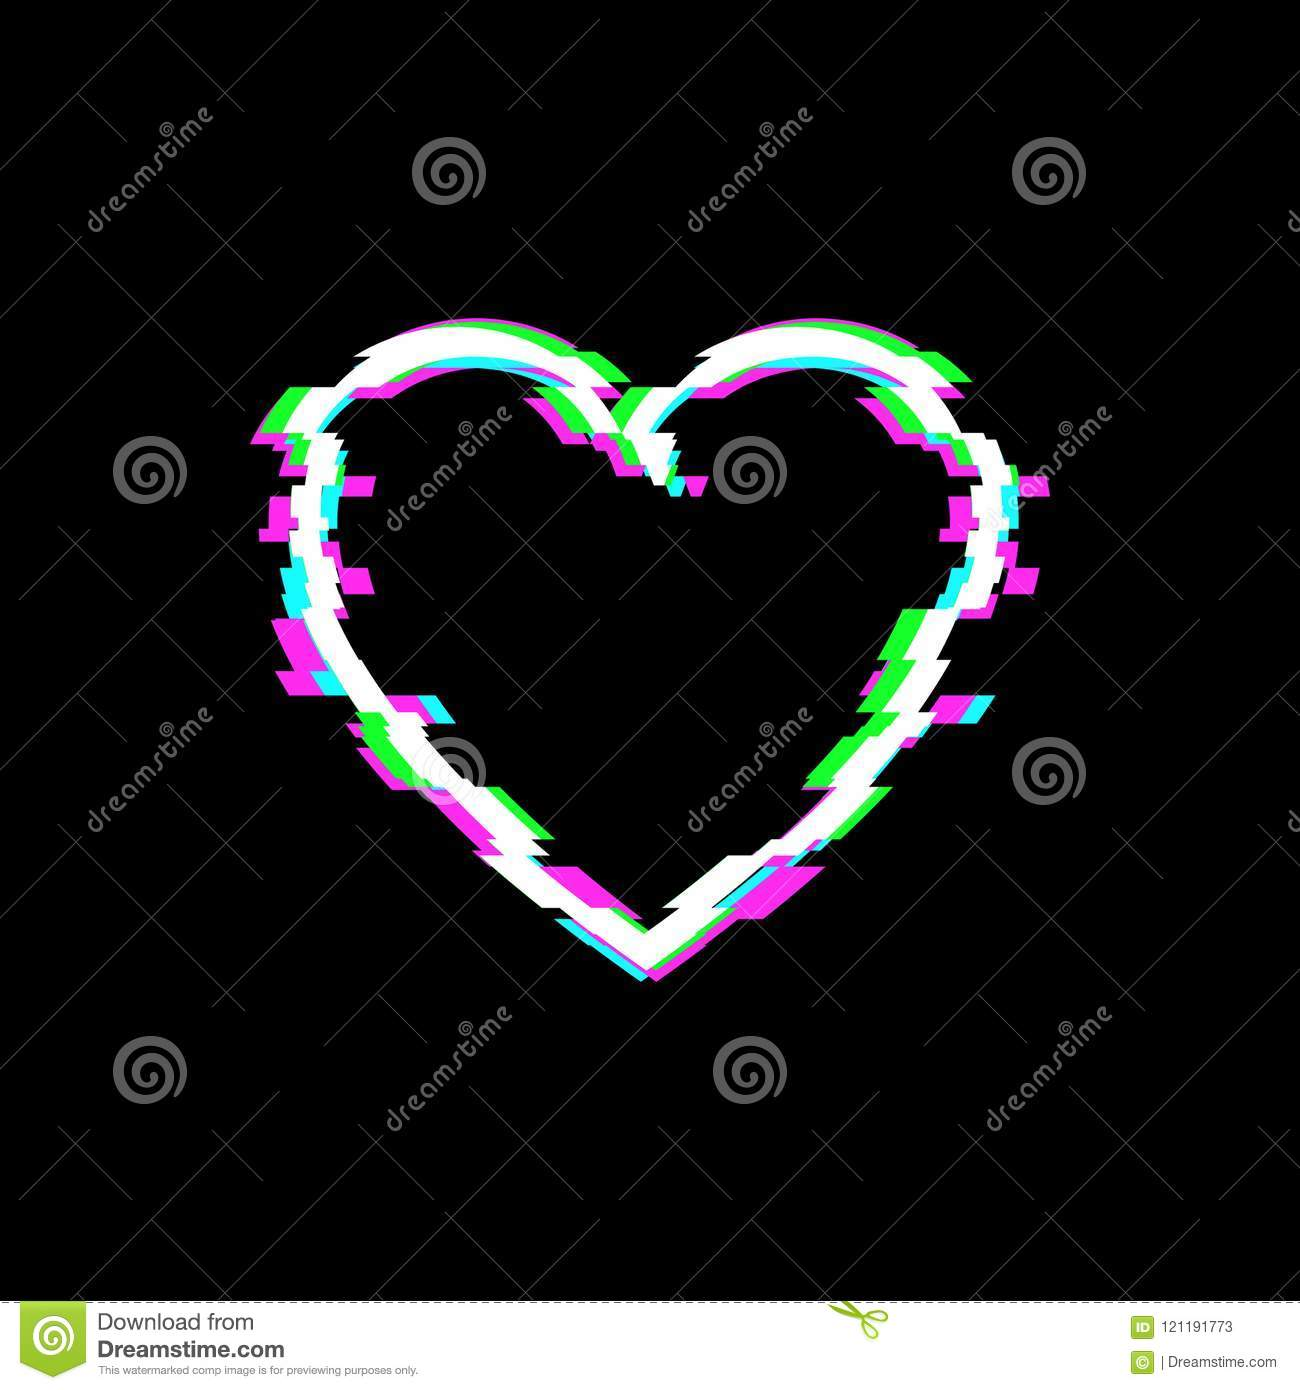 Vector Glitch Heart Icon, Technology Illustration Background, White Love Symbol.